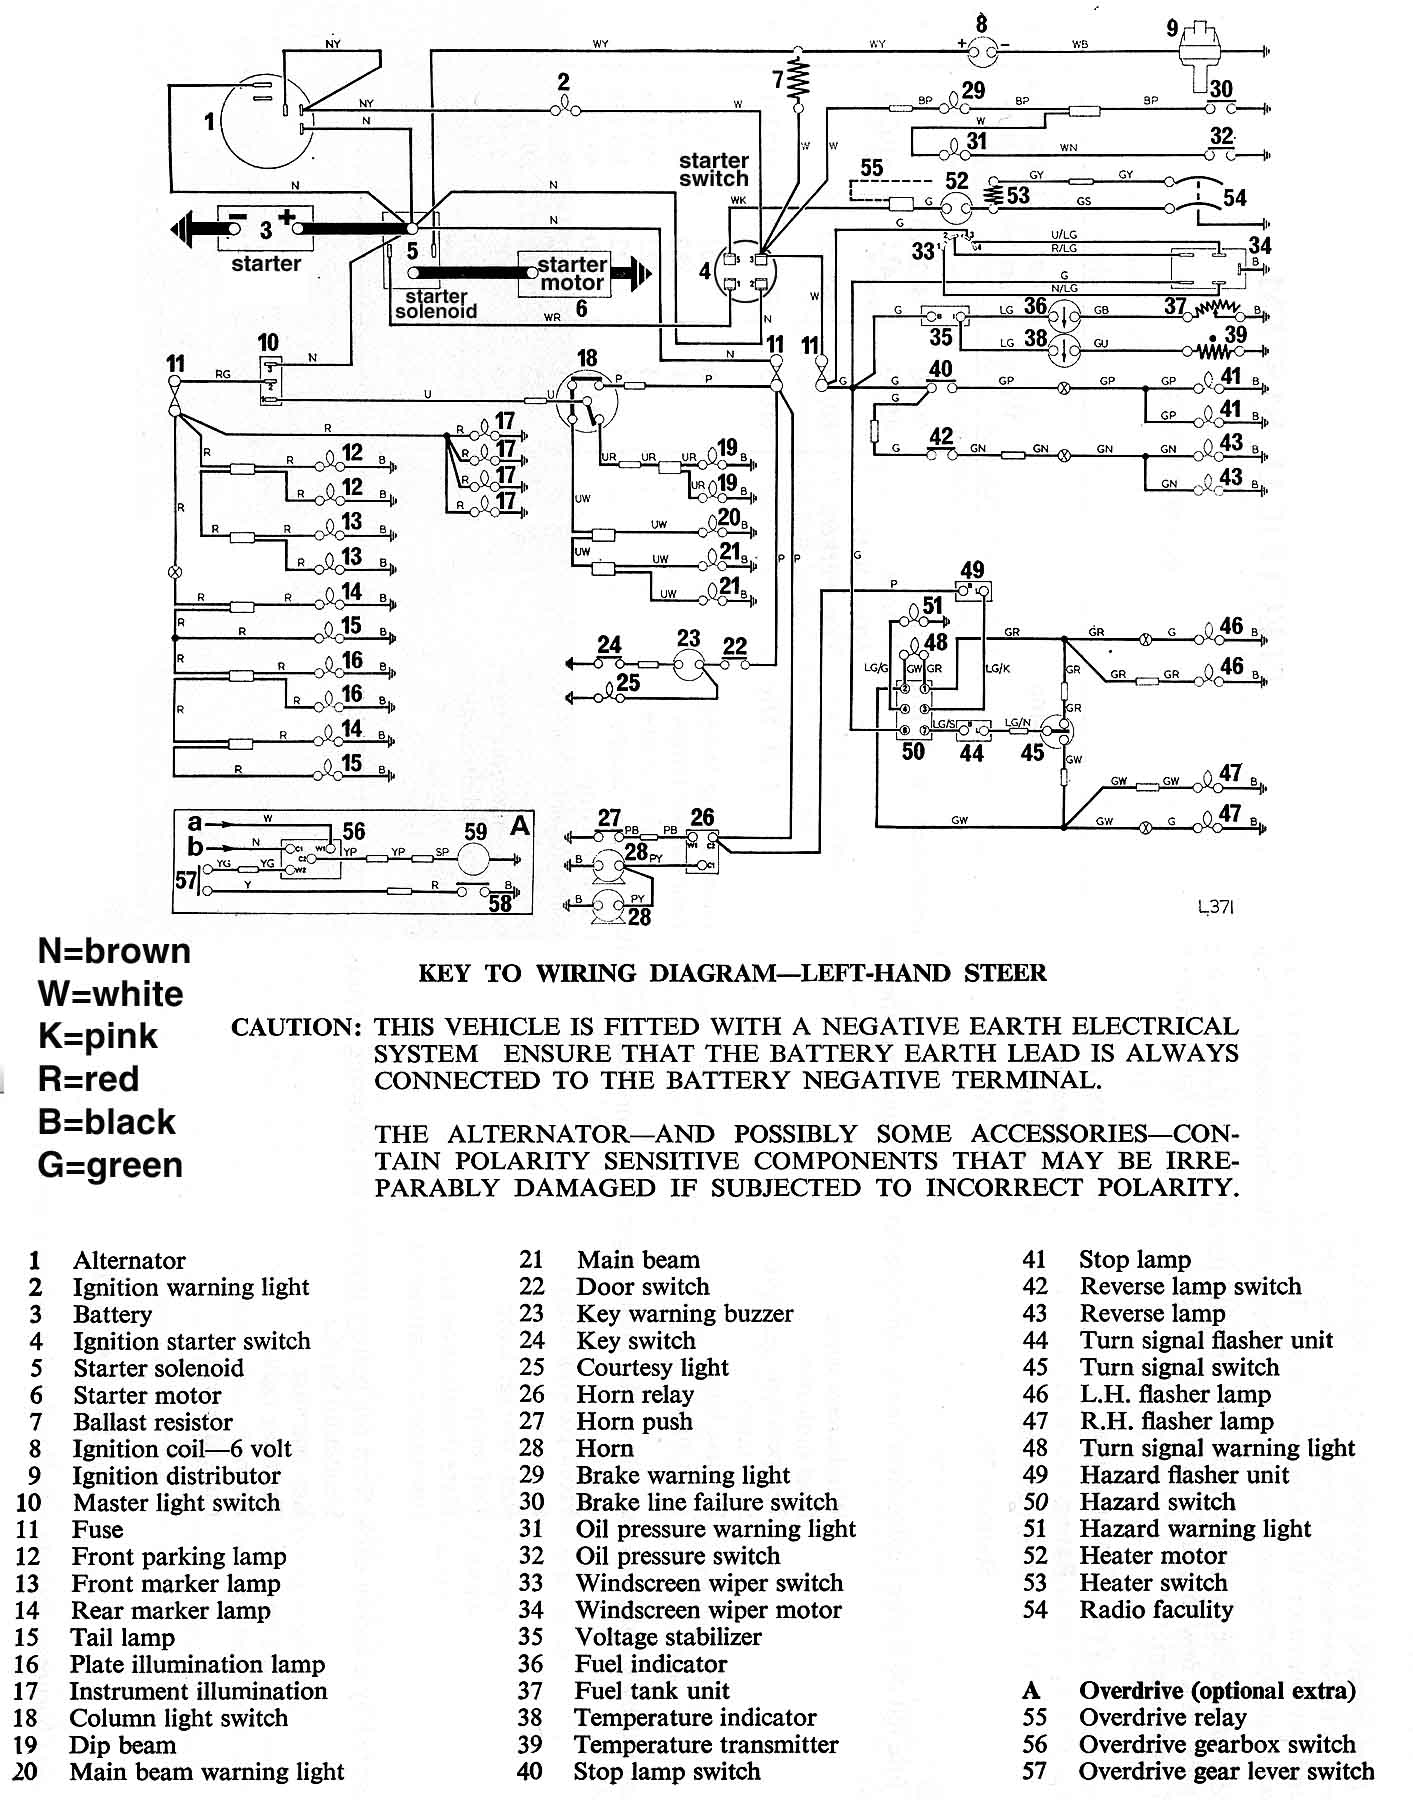 Wiring Schematics And Diagrams Triumph Spitfire Gt6 Herald Diagram For Ballast Resistor Mkiv